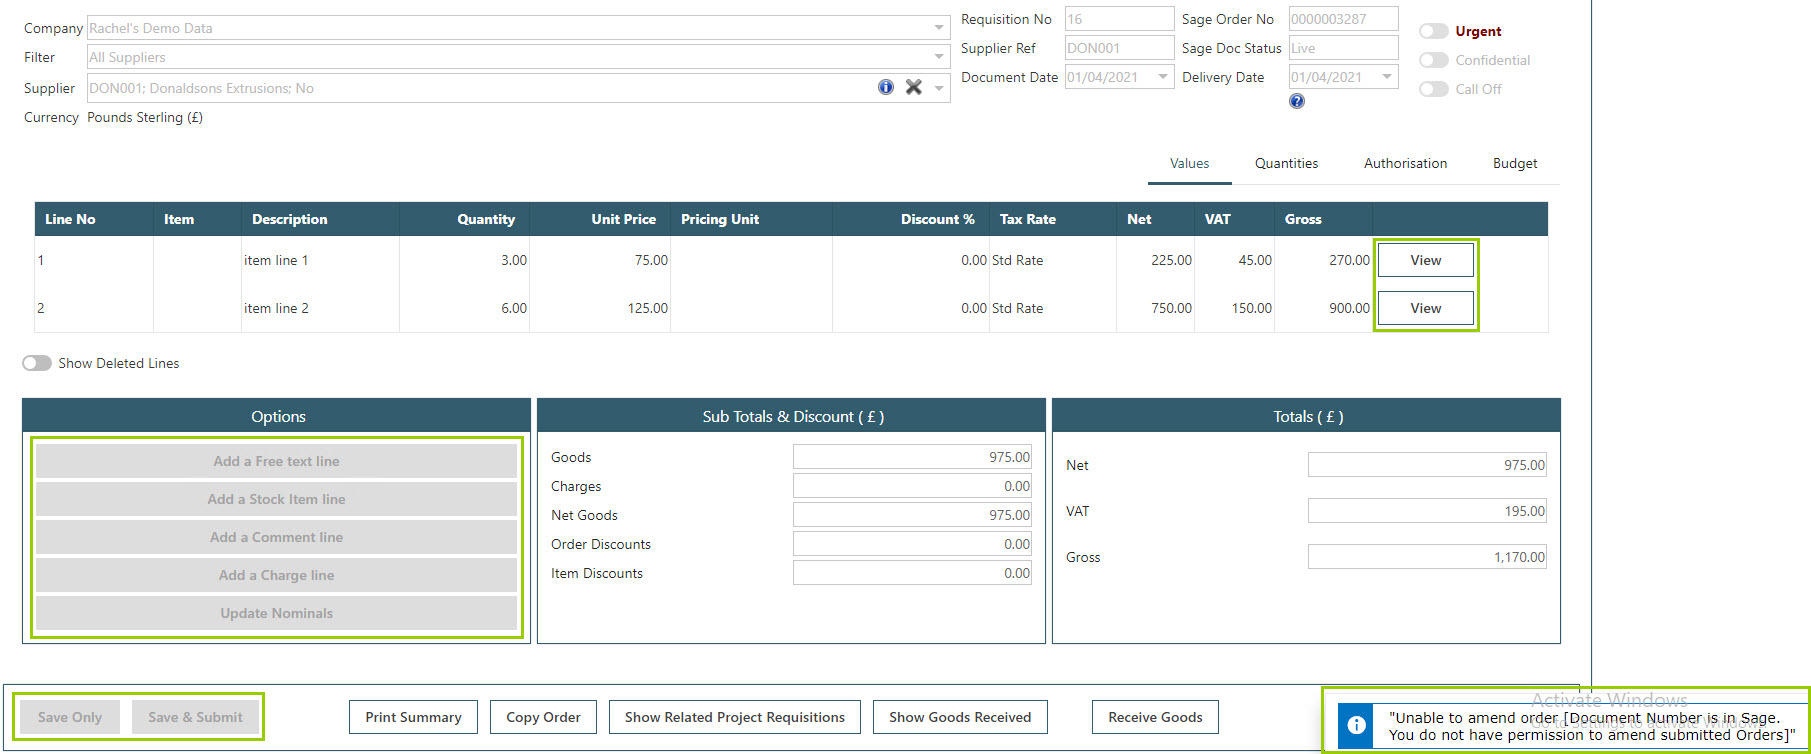 Sicon WAP Purchase Requisitions Help and User Guide - Requisition HUG Section 7.6 Image 1